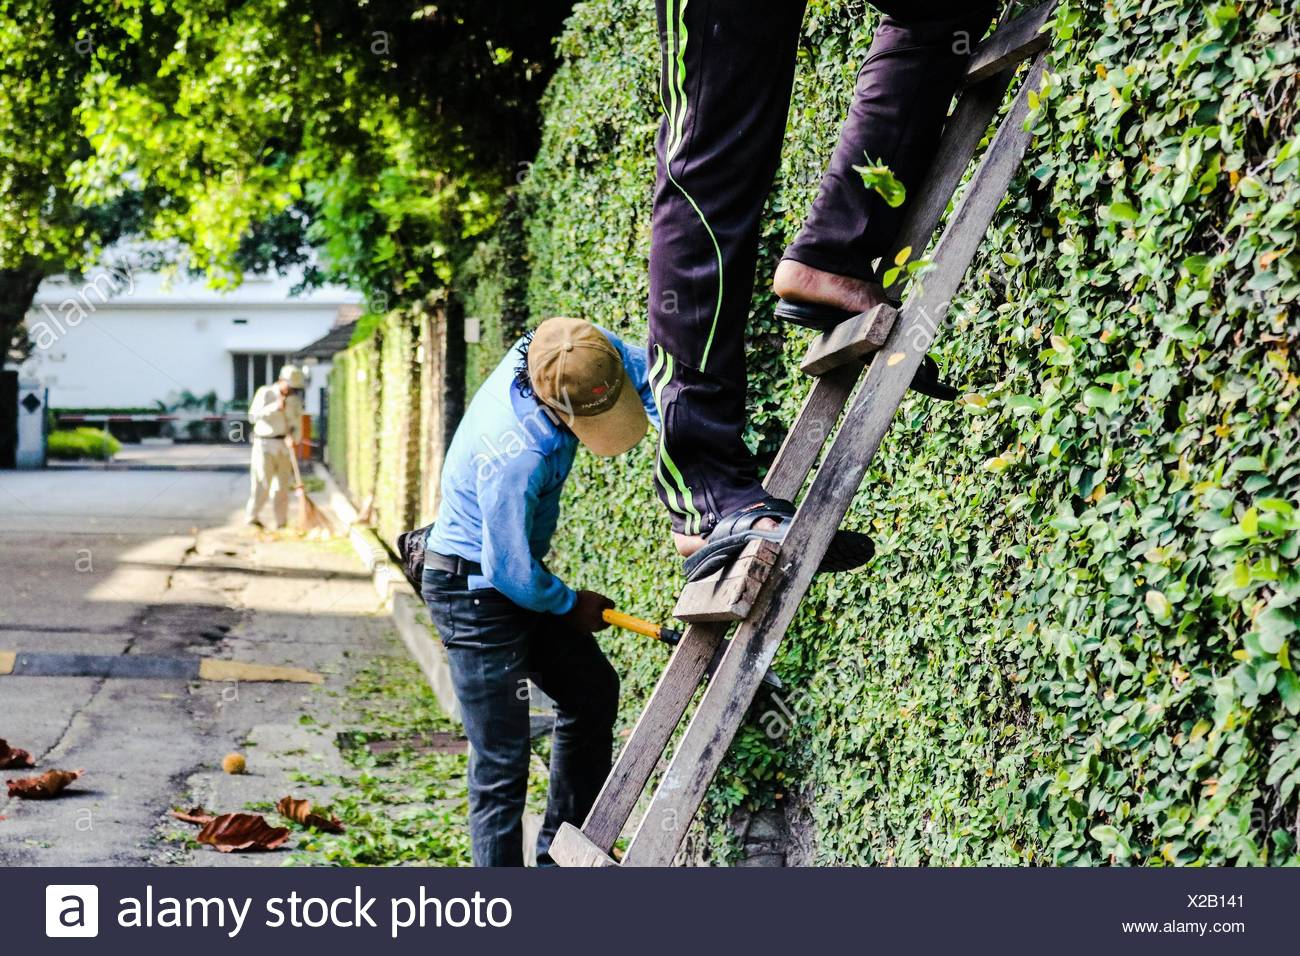 People take care gardens house - Stock Image